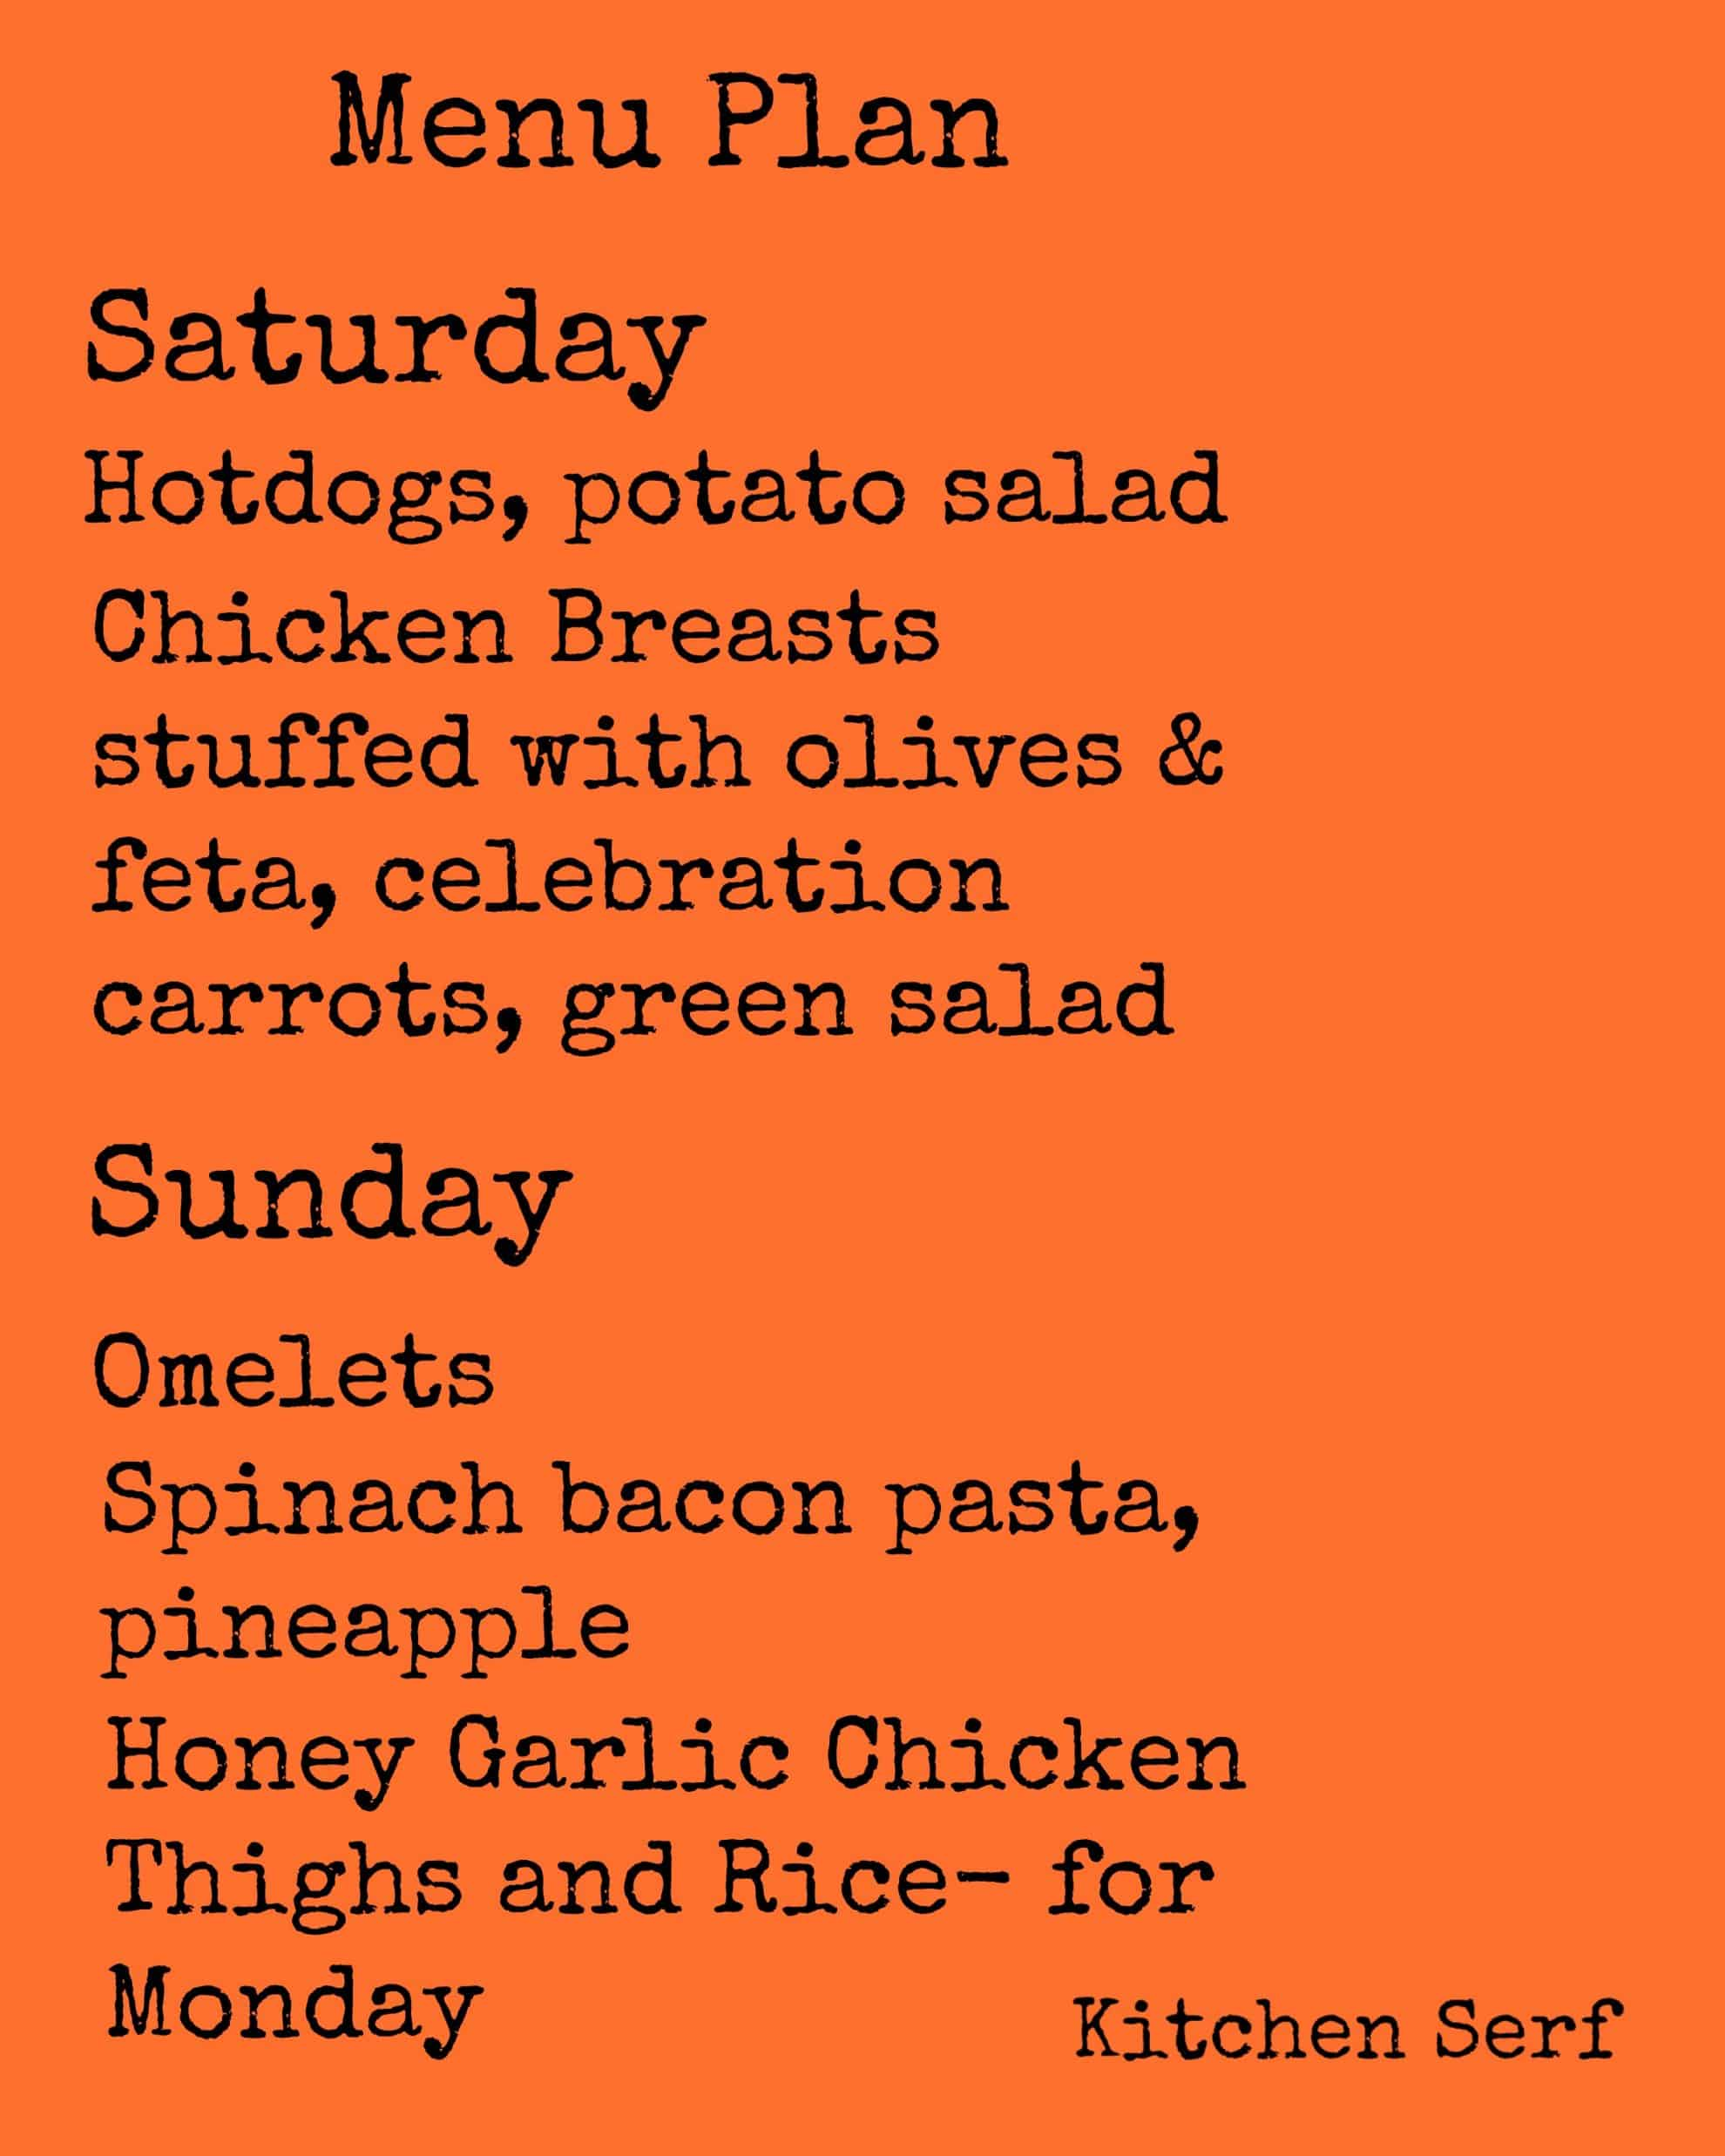 Weekend Menu Plan Nov. 1-2